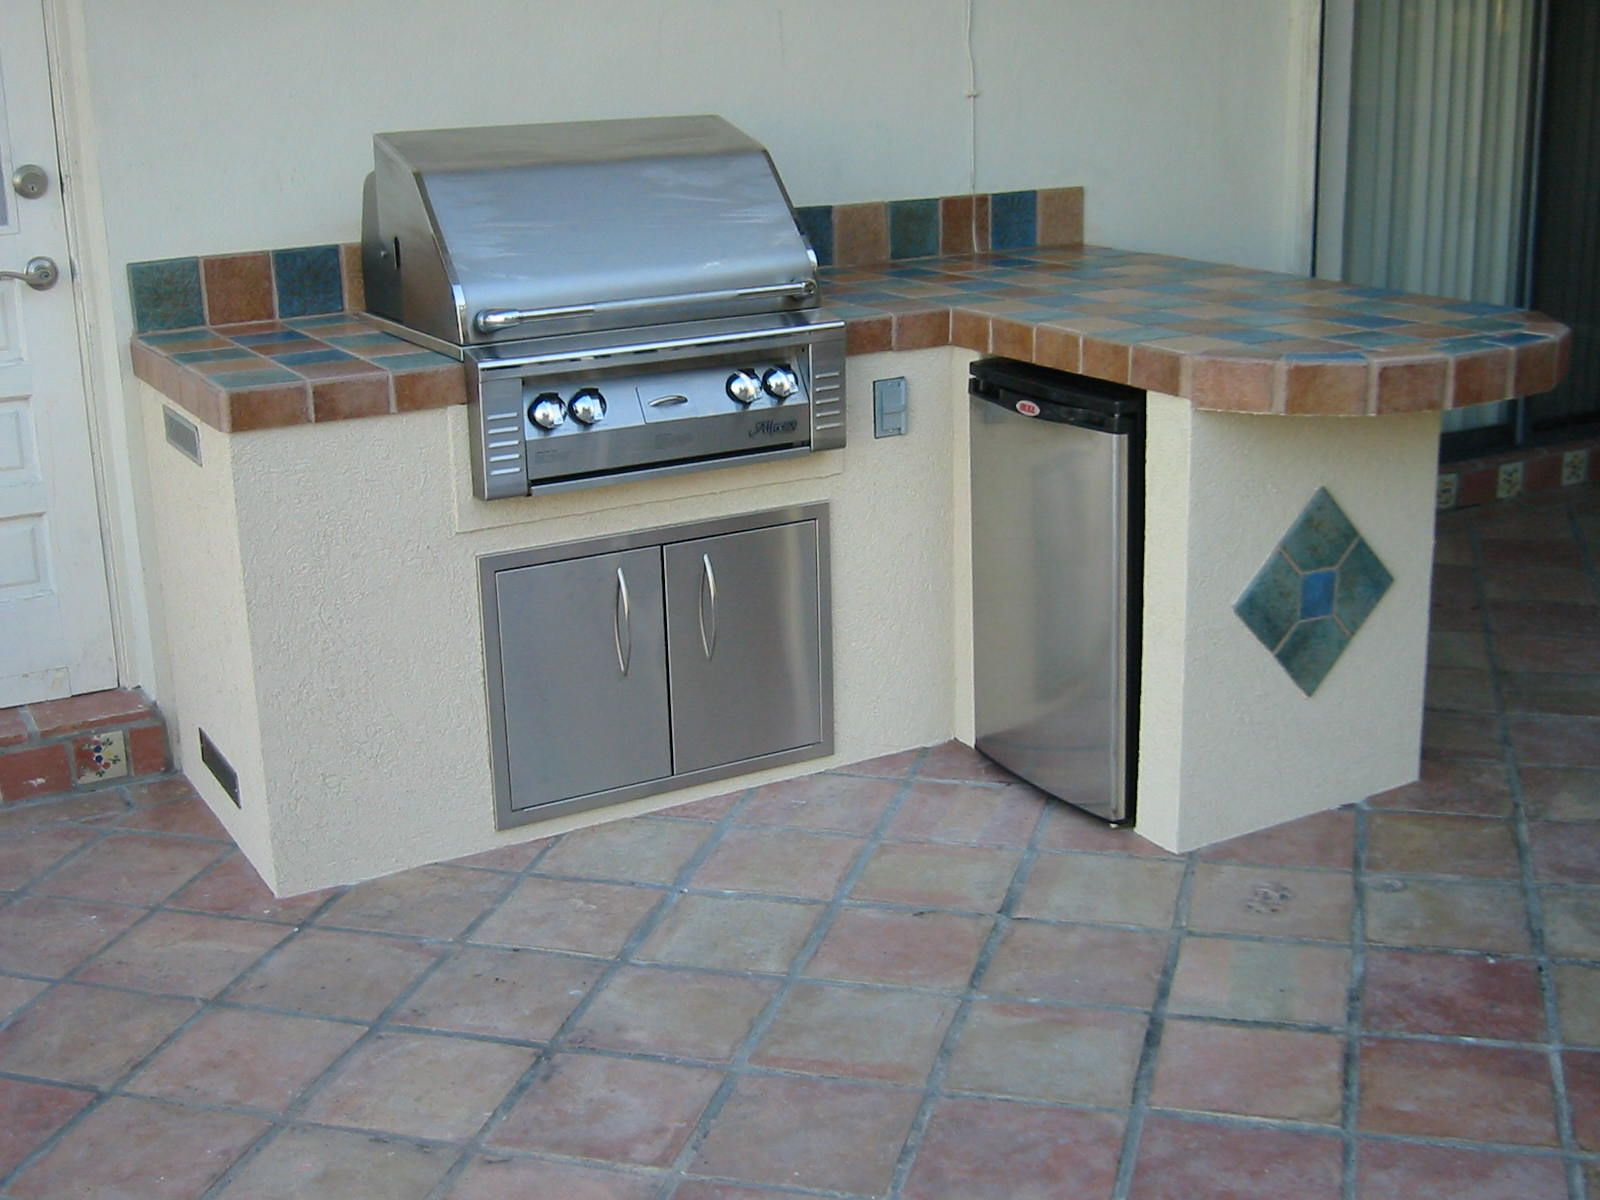 What kind of base design is this interesting outdoor grill tile